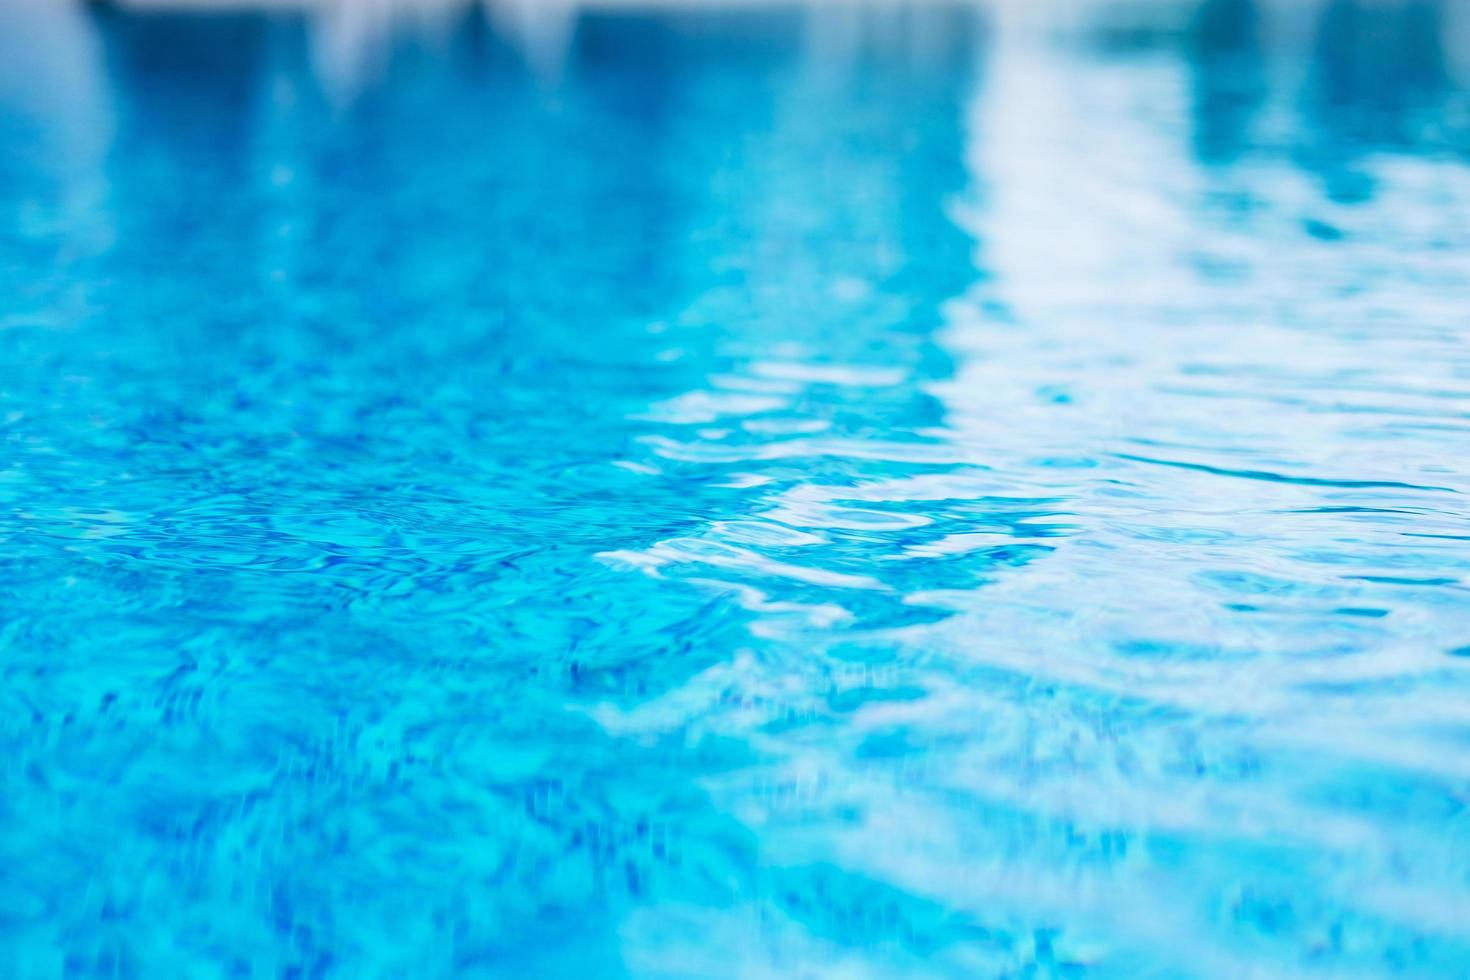 Close-up of the surface of a pool photo